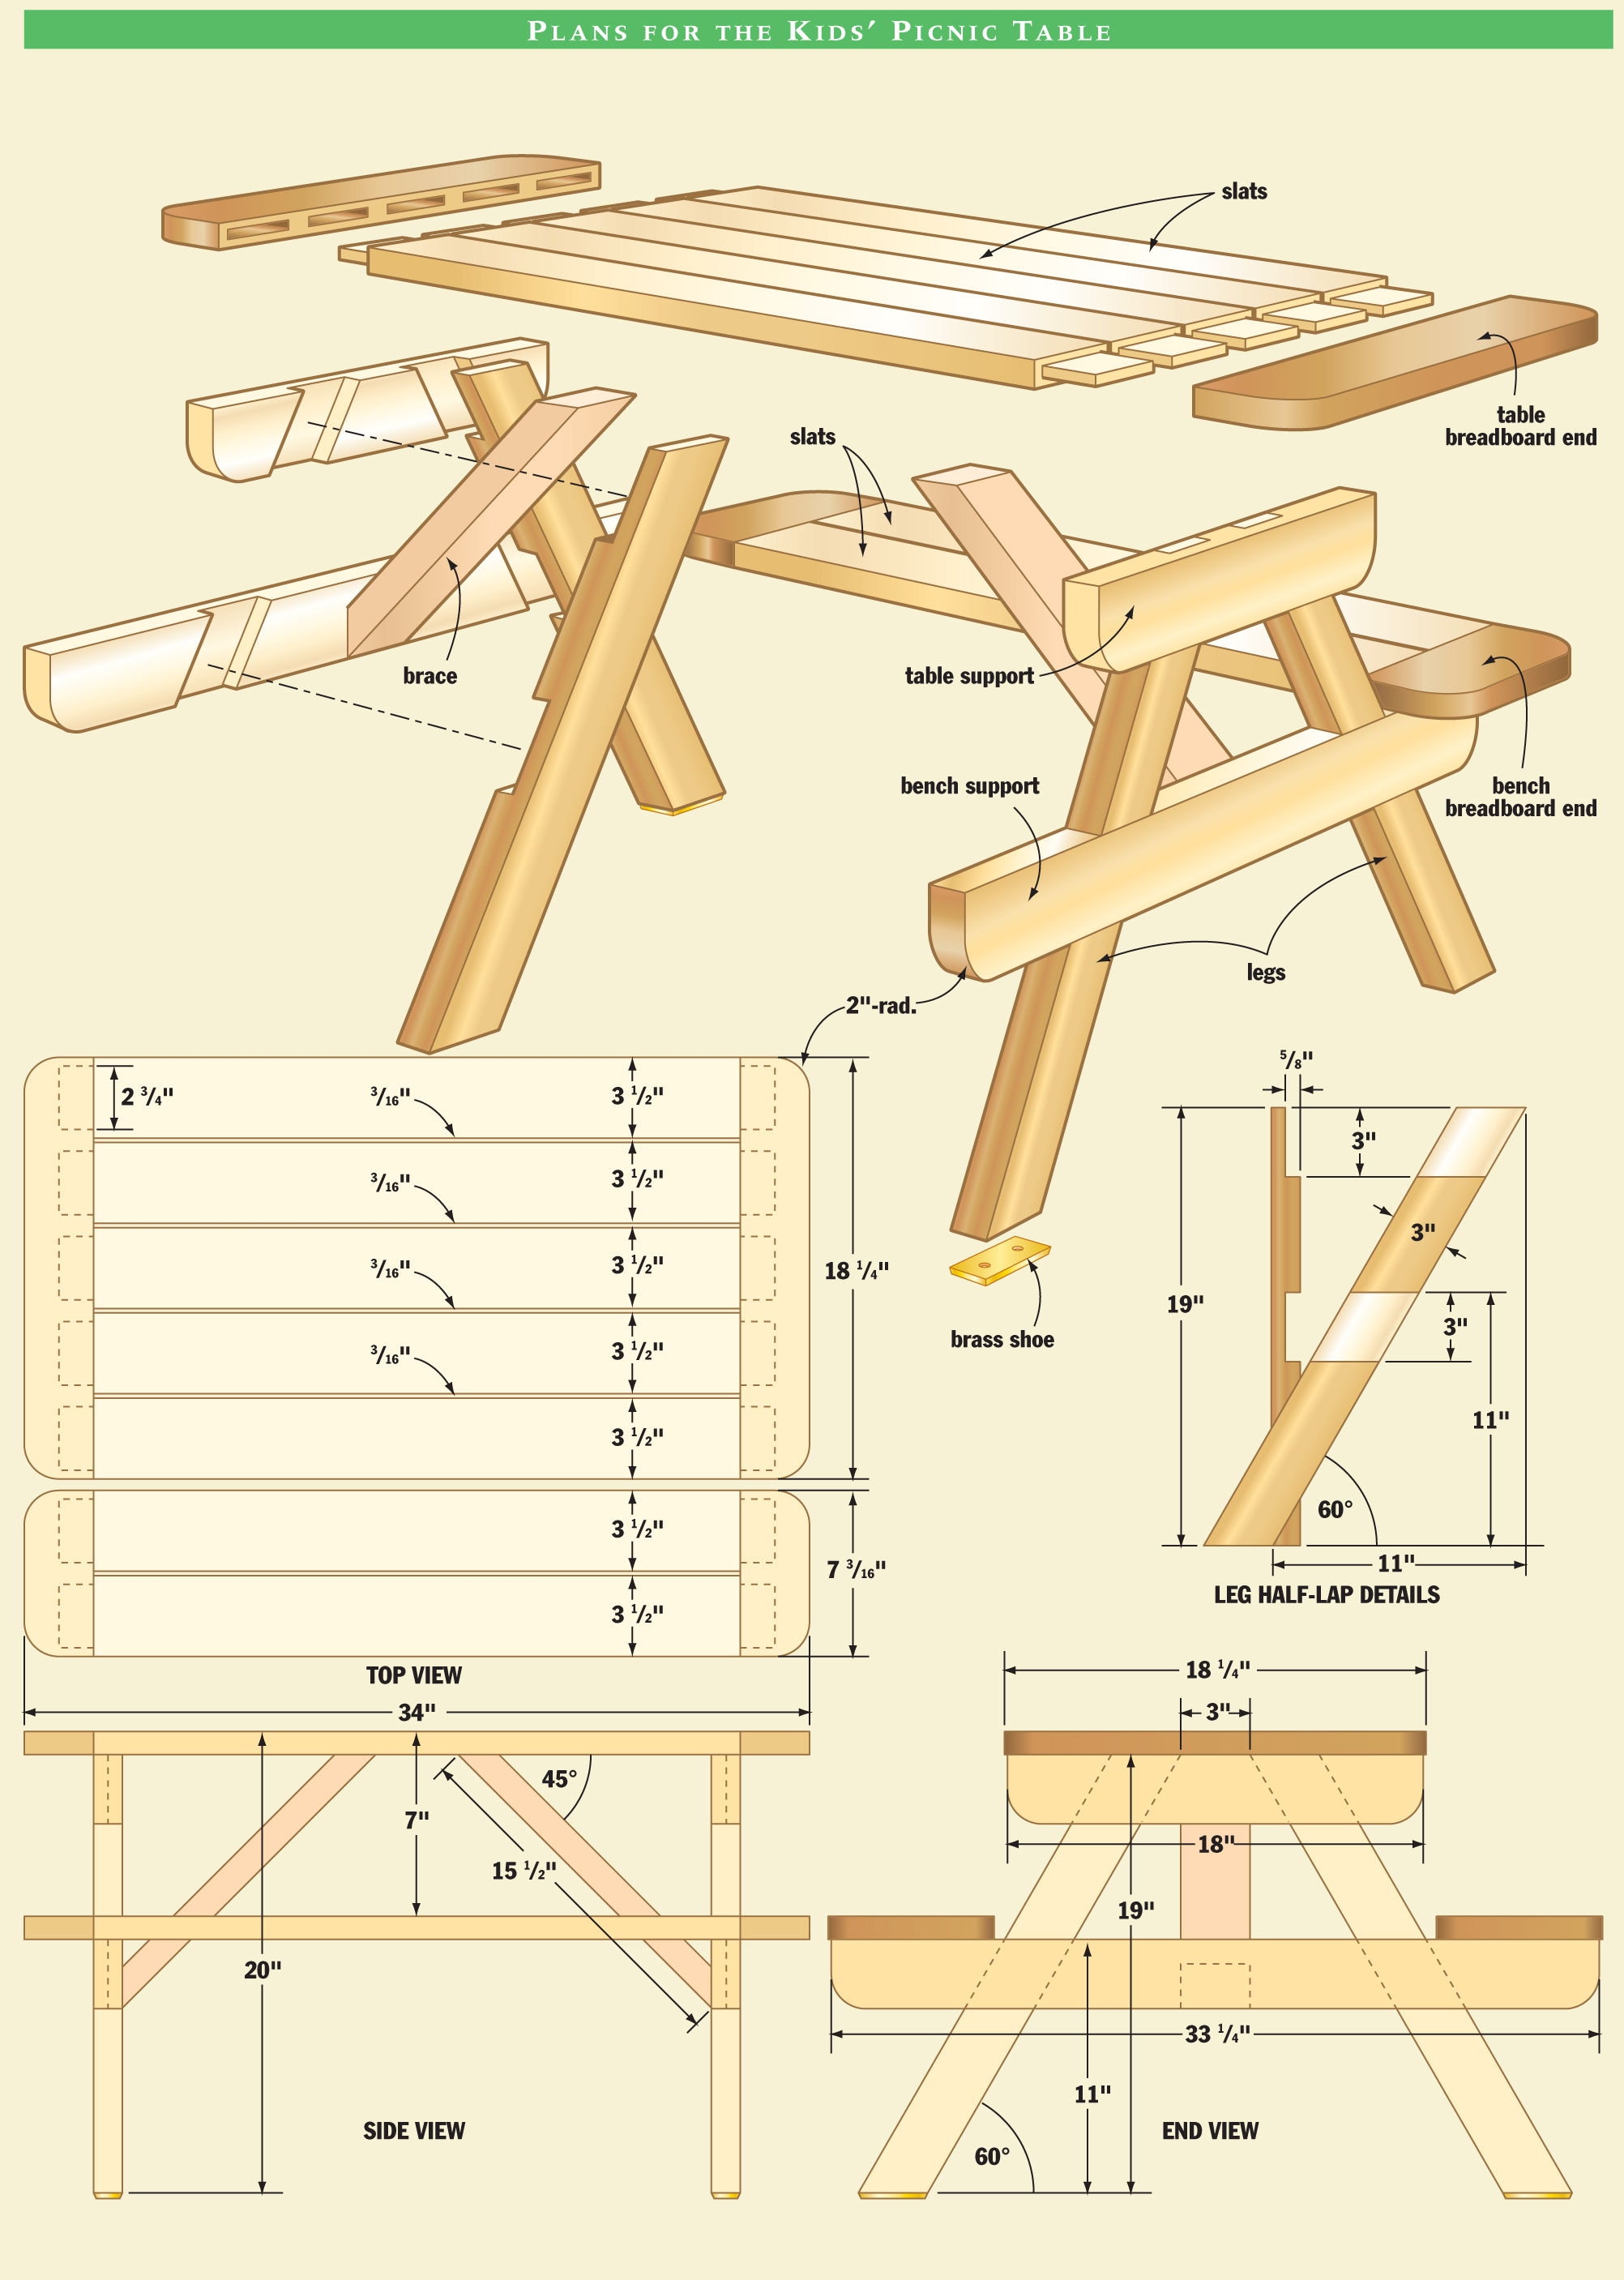 Free Plans For Picnic Table Bench Combo | Search Results | DIY ...